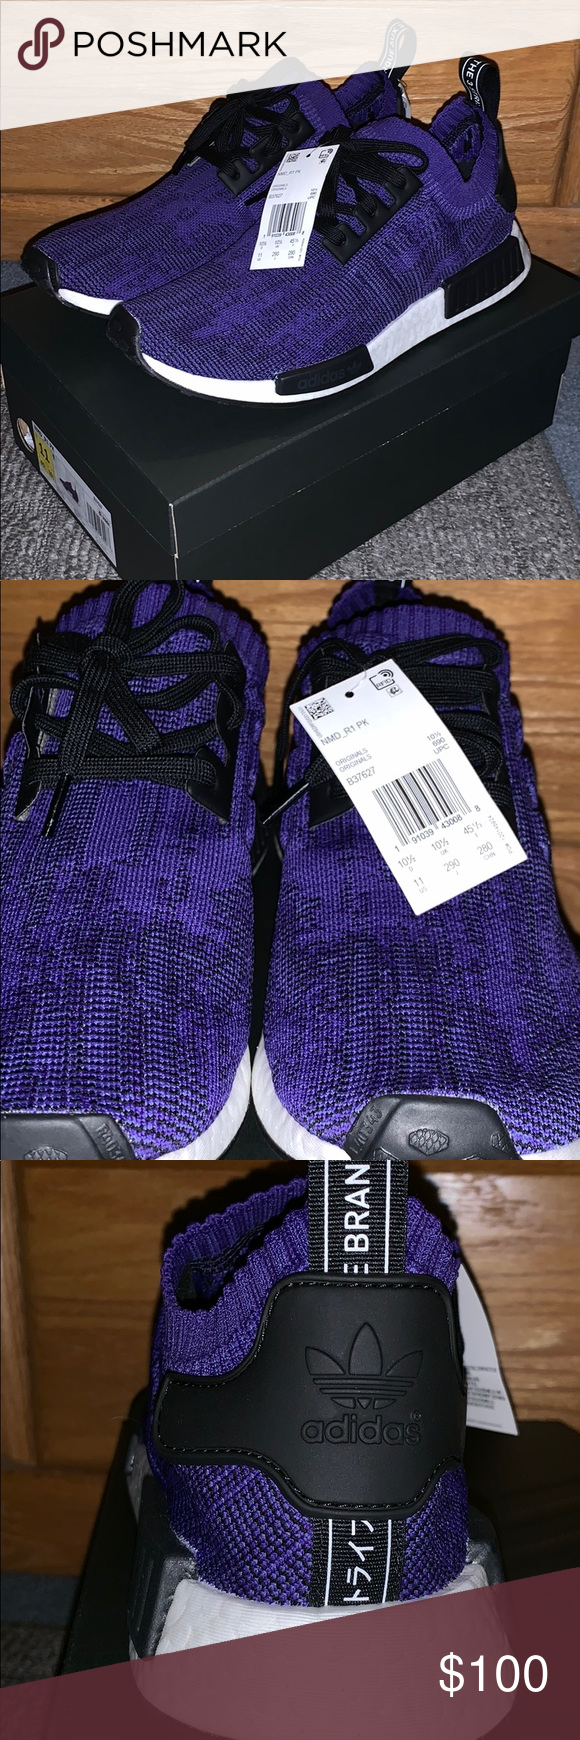 wholesale dealer 84ea9 4039c Adidas NMD R1 PrimeKnit Energy Ink Deadstock with tags and ...